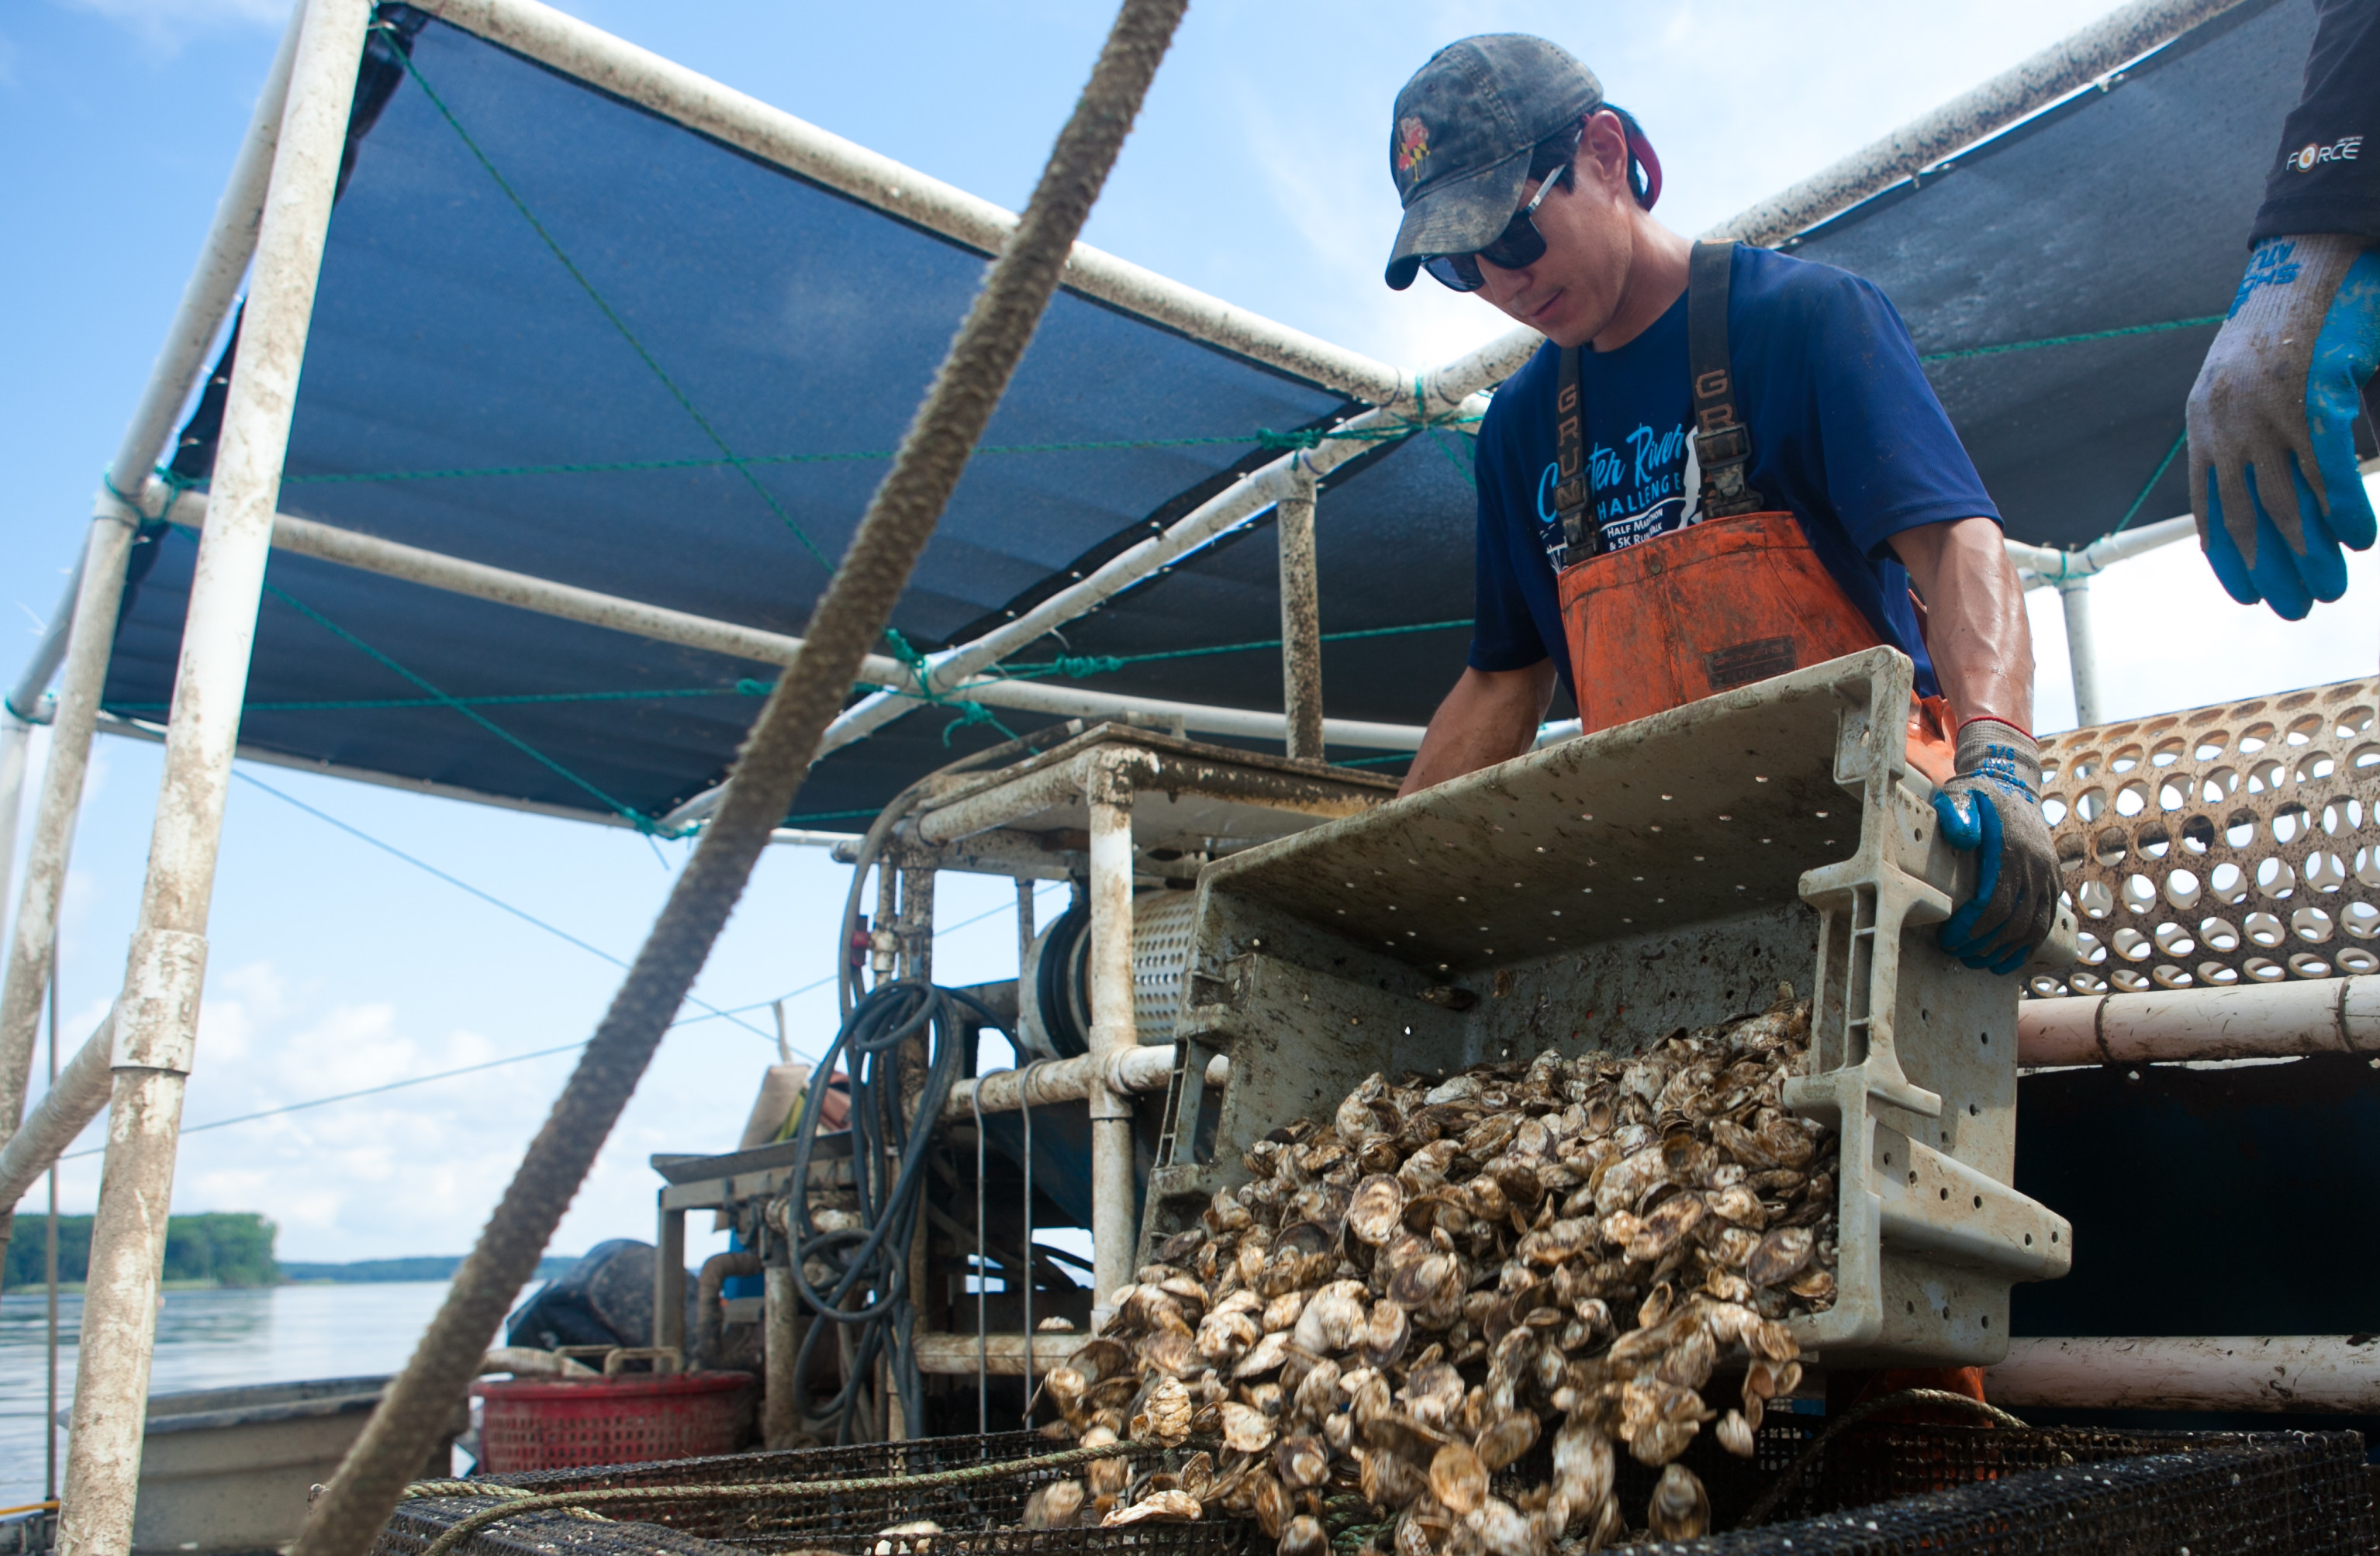 Support the Chesapeake's Seafood Industry